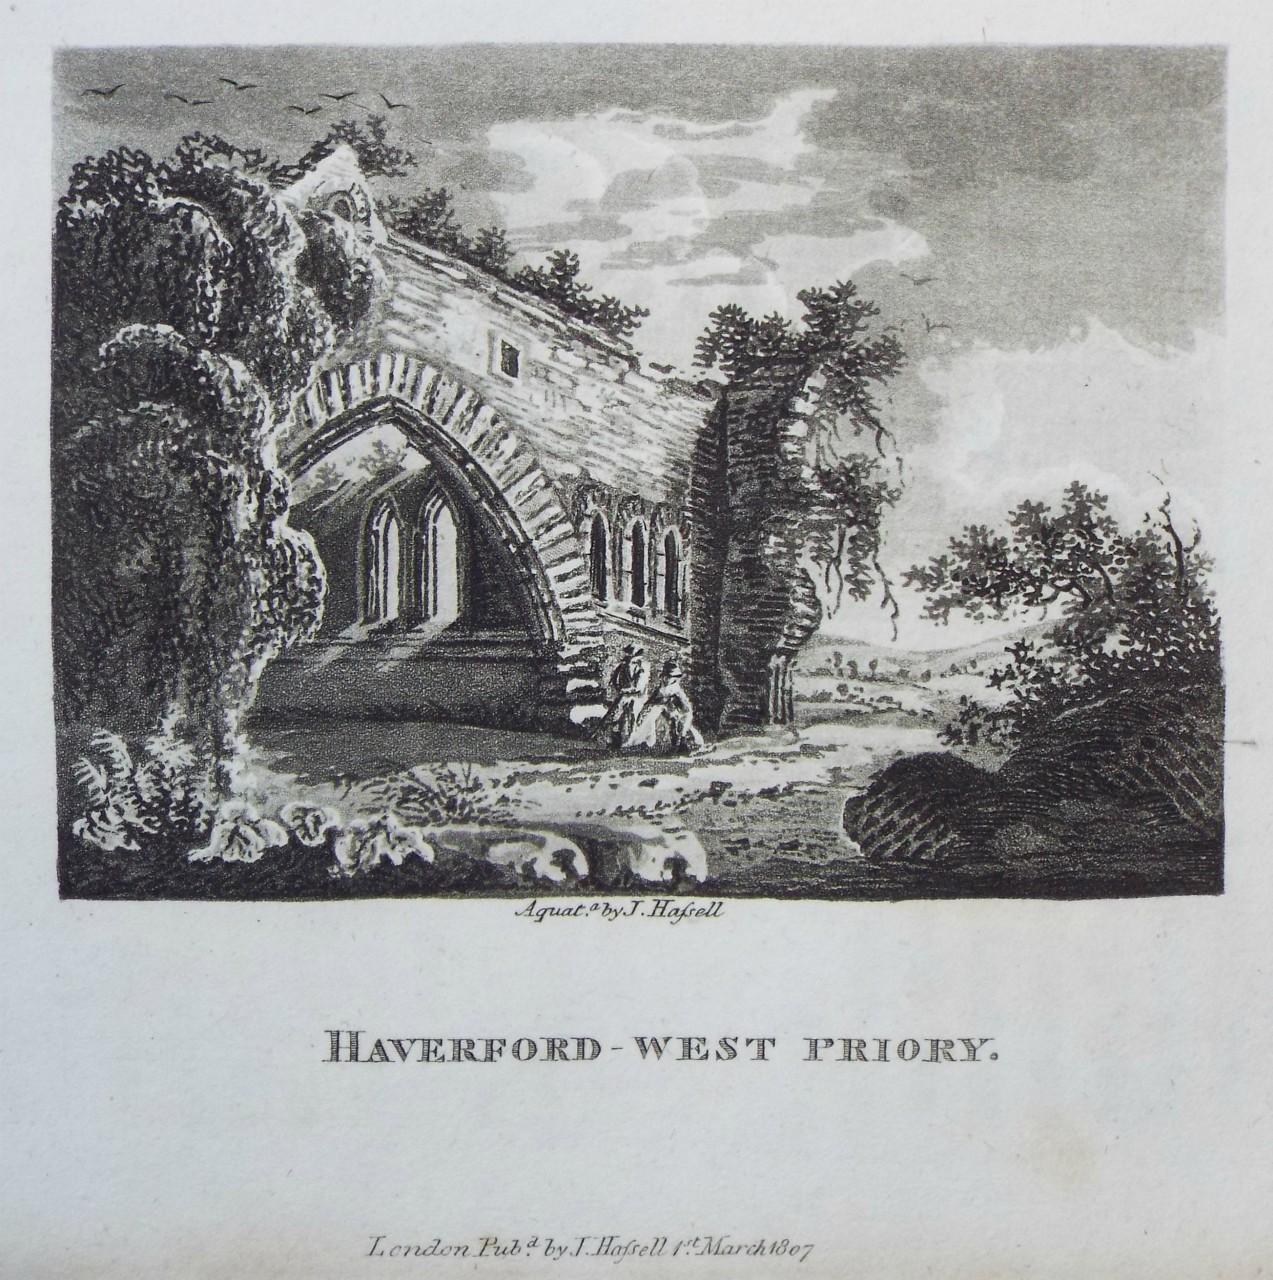 Aquatint - Haverford-west Priory. - Hassell